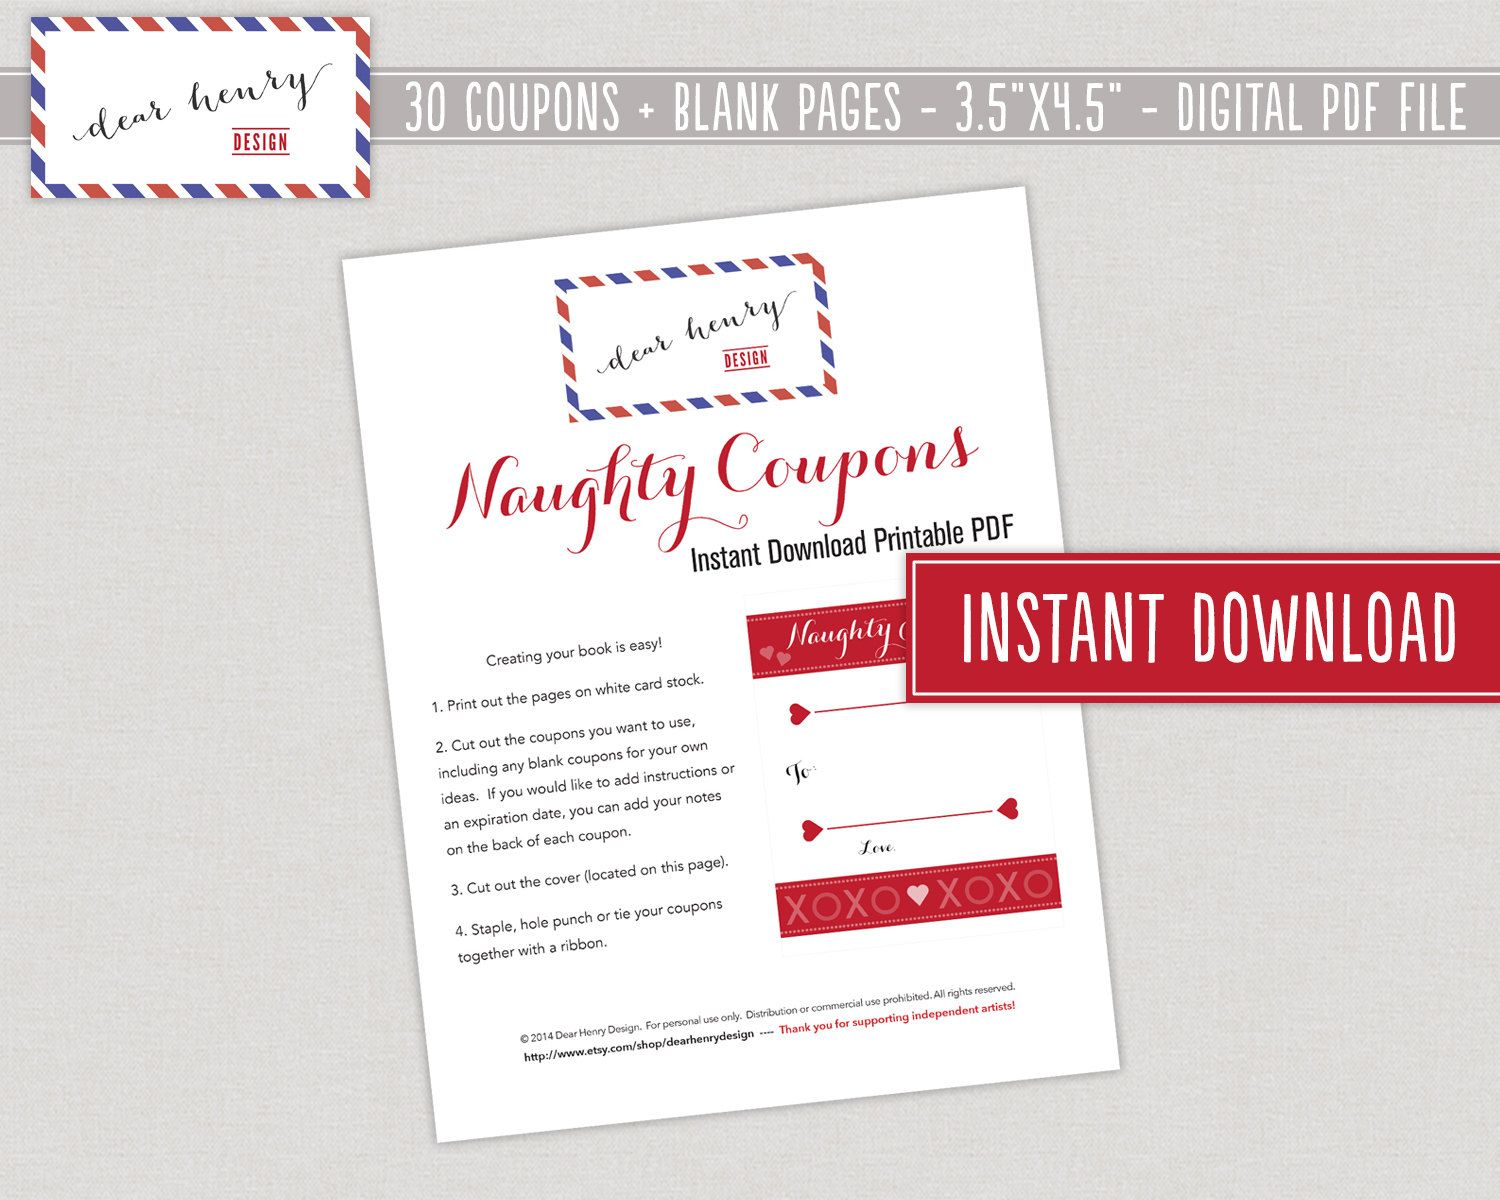 mature+sexy+love+coupons+naughty+printable+by+dearhenrydesign,+$5.00